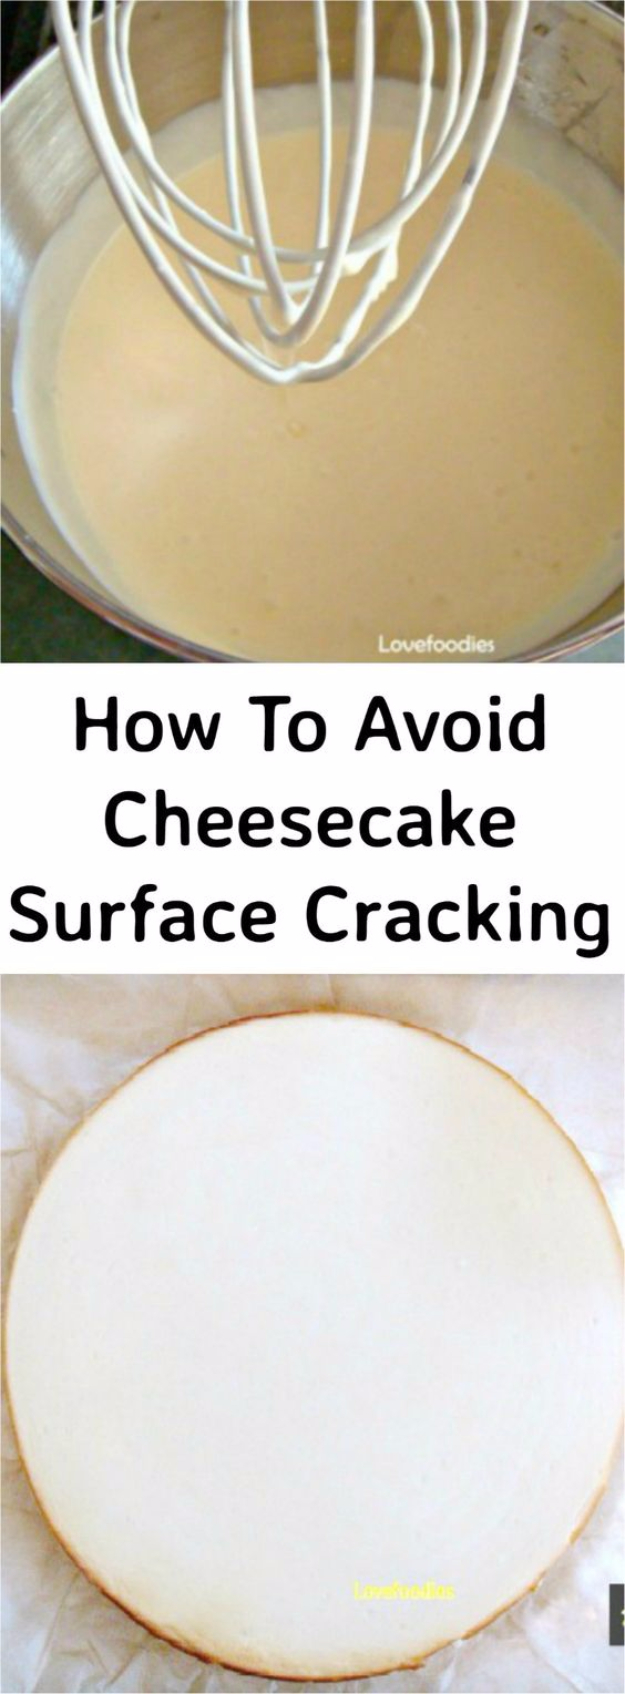 Best Baking Hacks - Avoid Cheesecake Surface Cracking - DIY Cooking Tips and Tricks for Baking Recipes - Quick Ways to Bake Cake, Cupcakes, Desserts and Cookies - Kitchen Lifehacks for Bakers